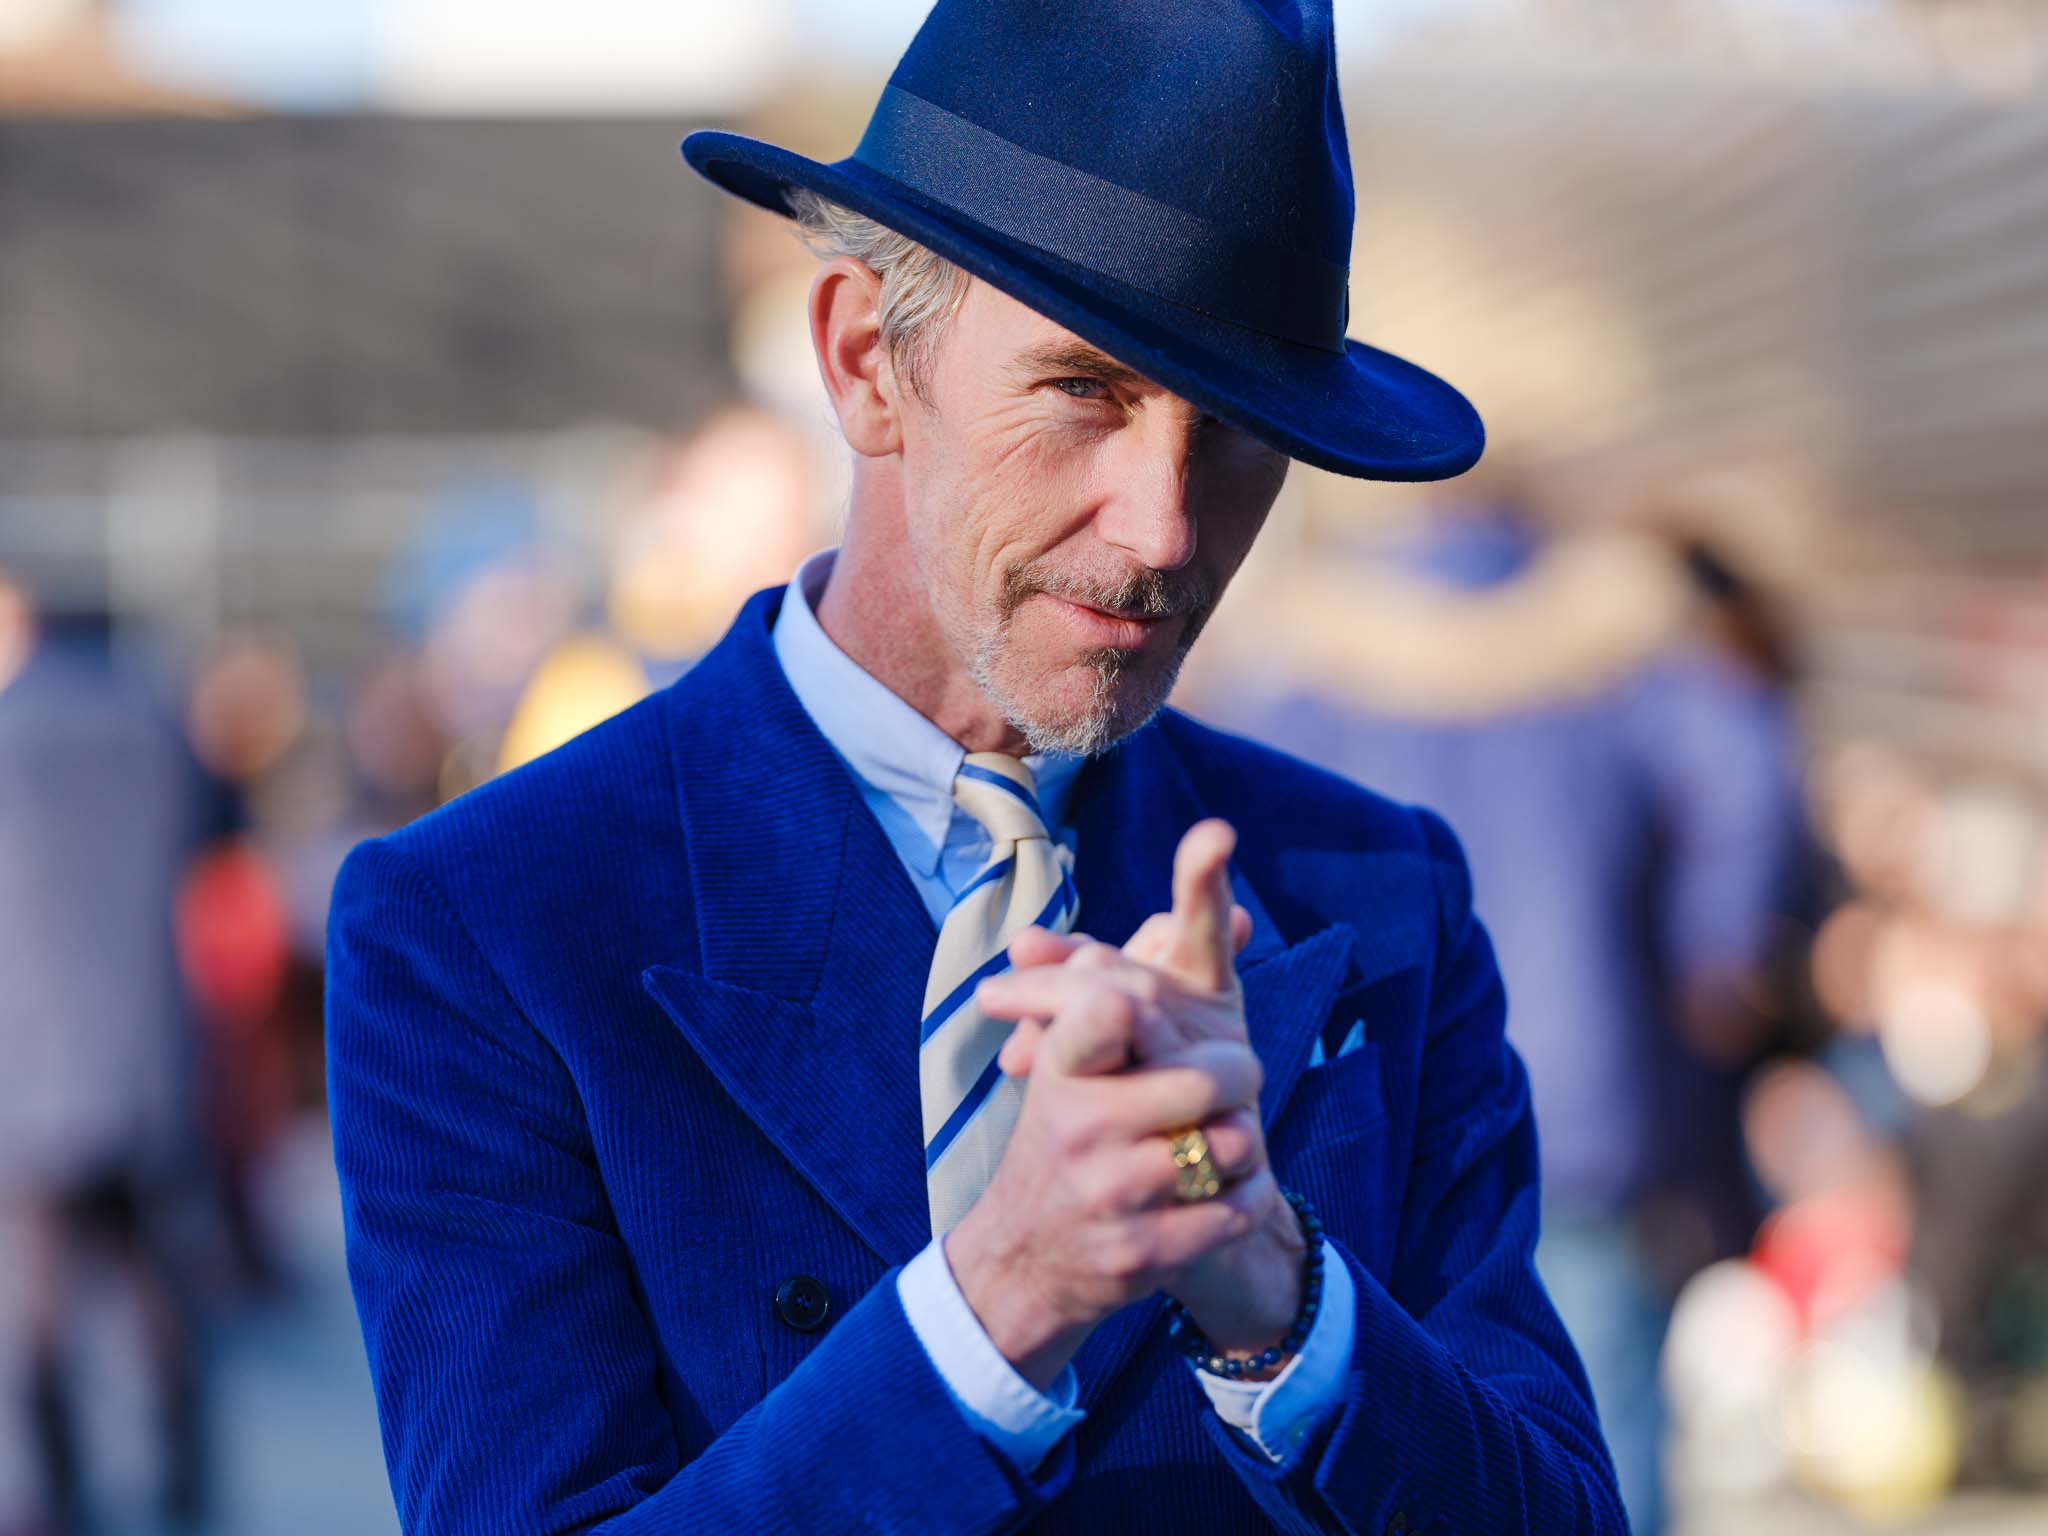 High resolution photographs from the 95th edition of Pitti Immagine Uomo in Florence